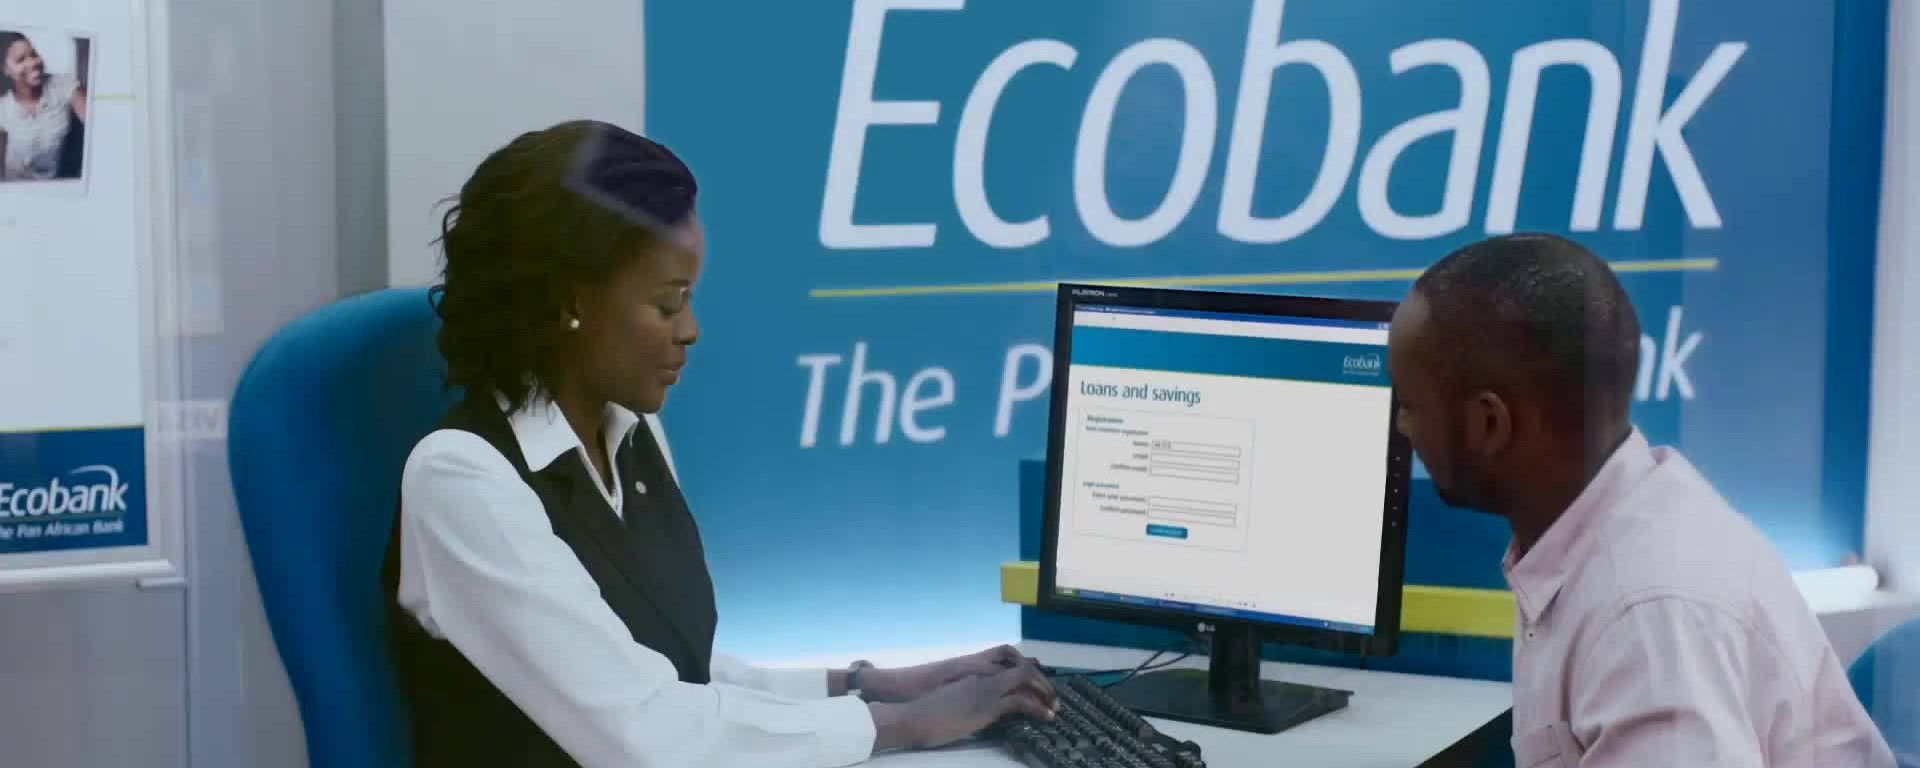 Ecobank Transnational Incorporated - Ecobank Fintech Challenge For African Startups Movemeback African initiative cover image